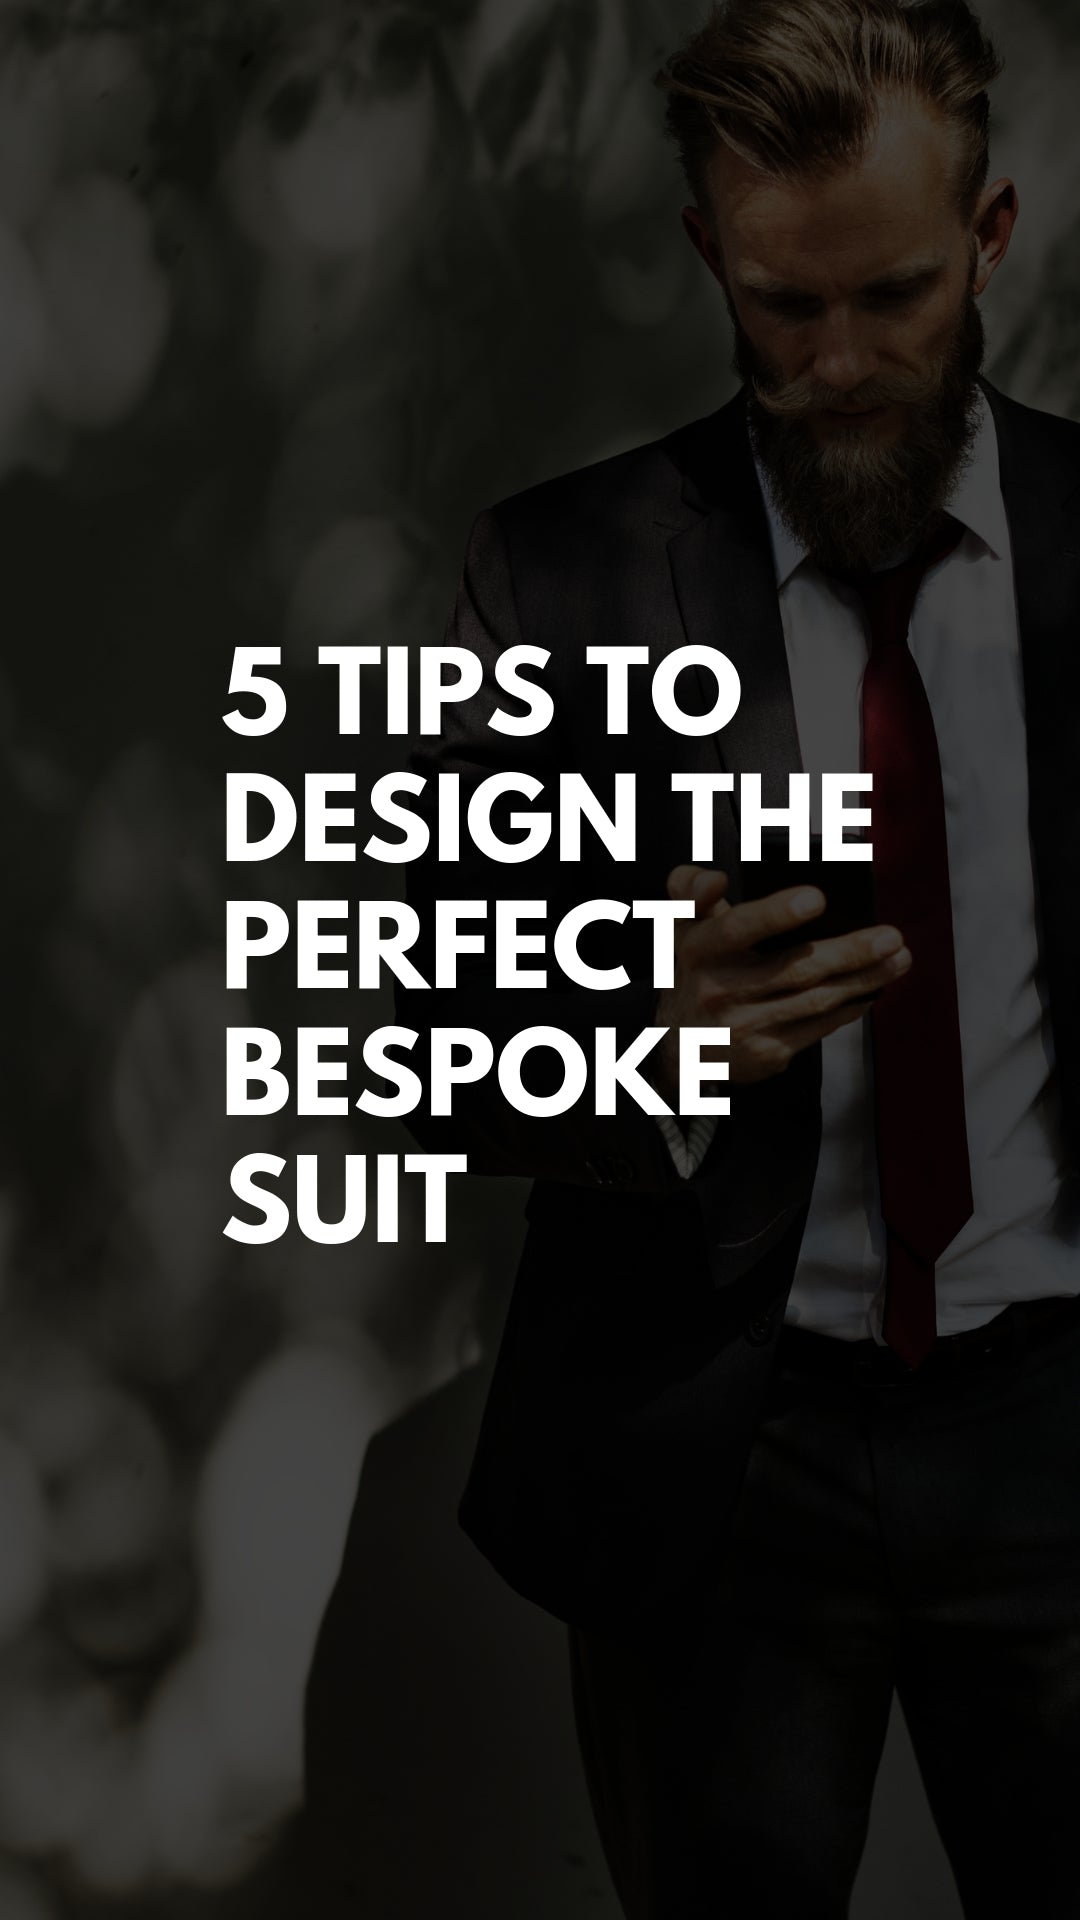 5 Tips To Design The Perfect Bespoke Suit